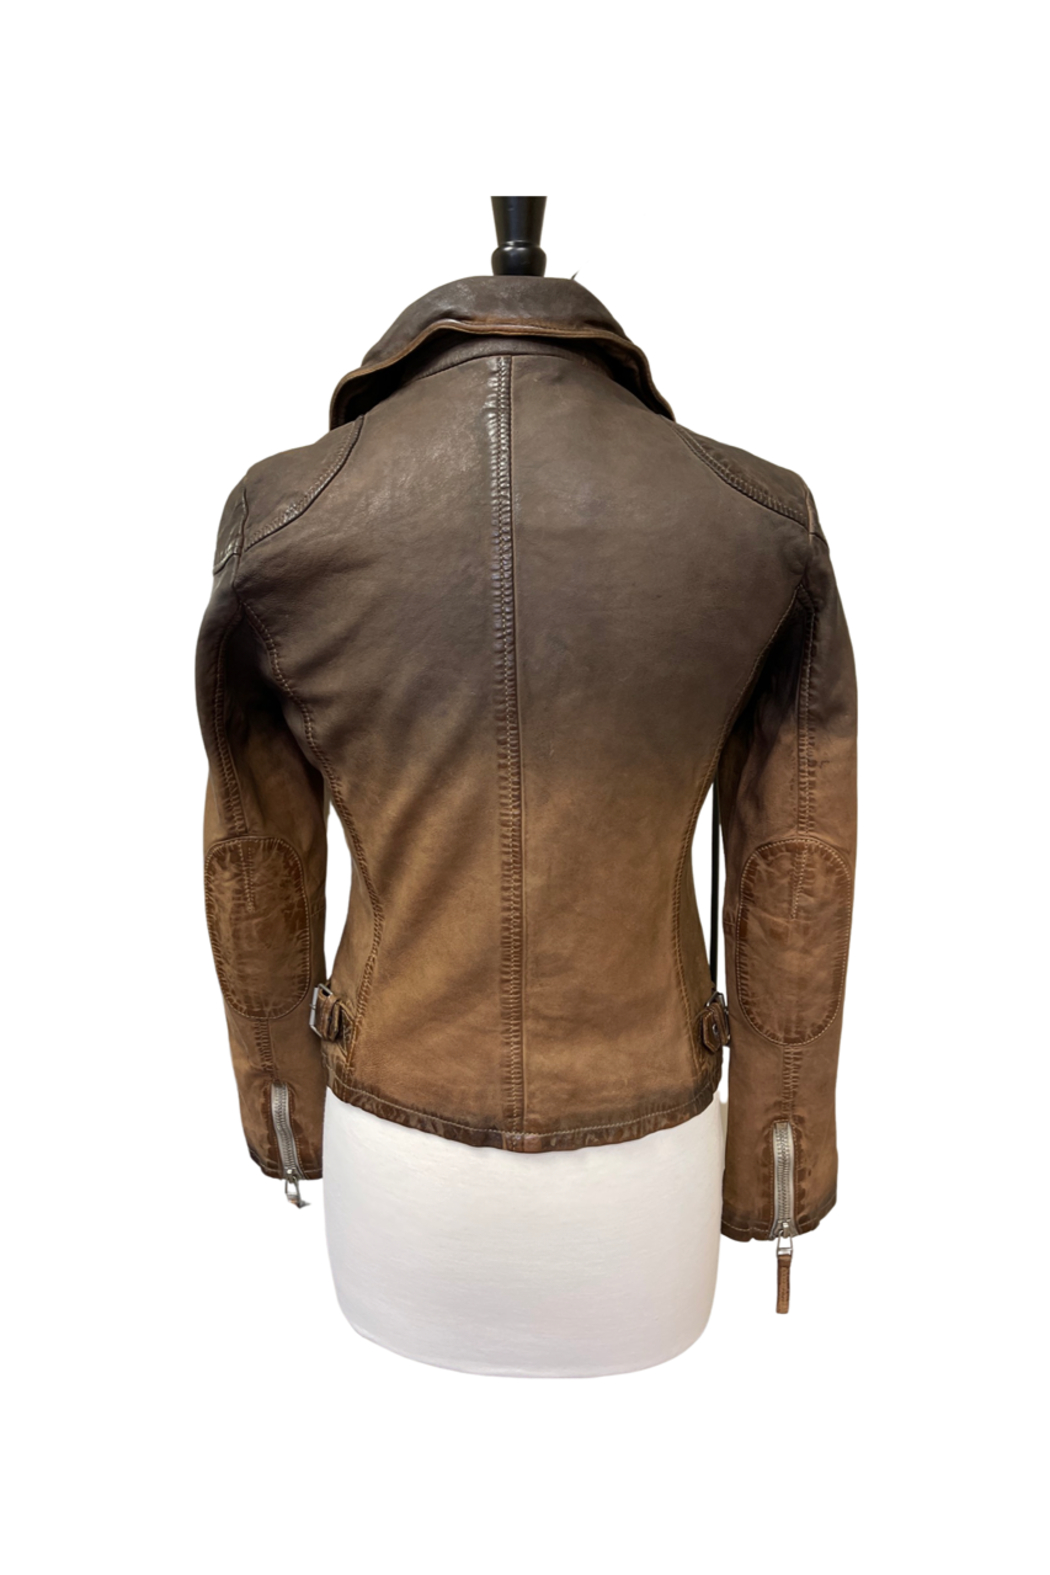 Mauritius Karyn Two Tone Distressed Leather Jacket - Side Cropped Image